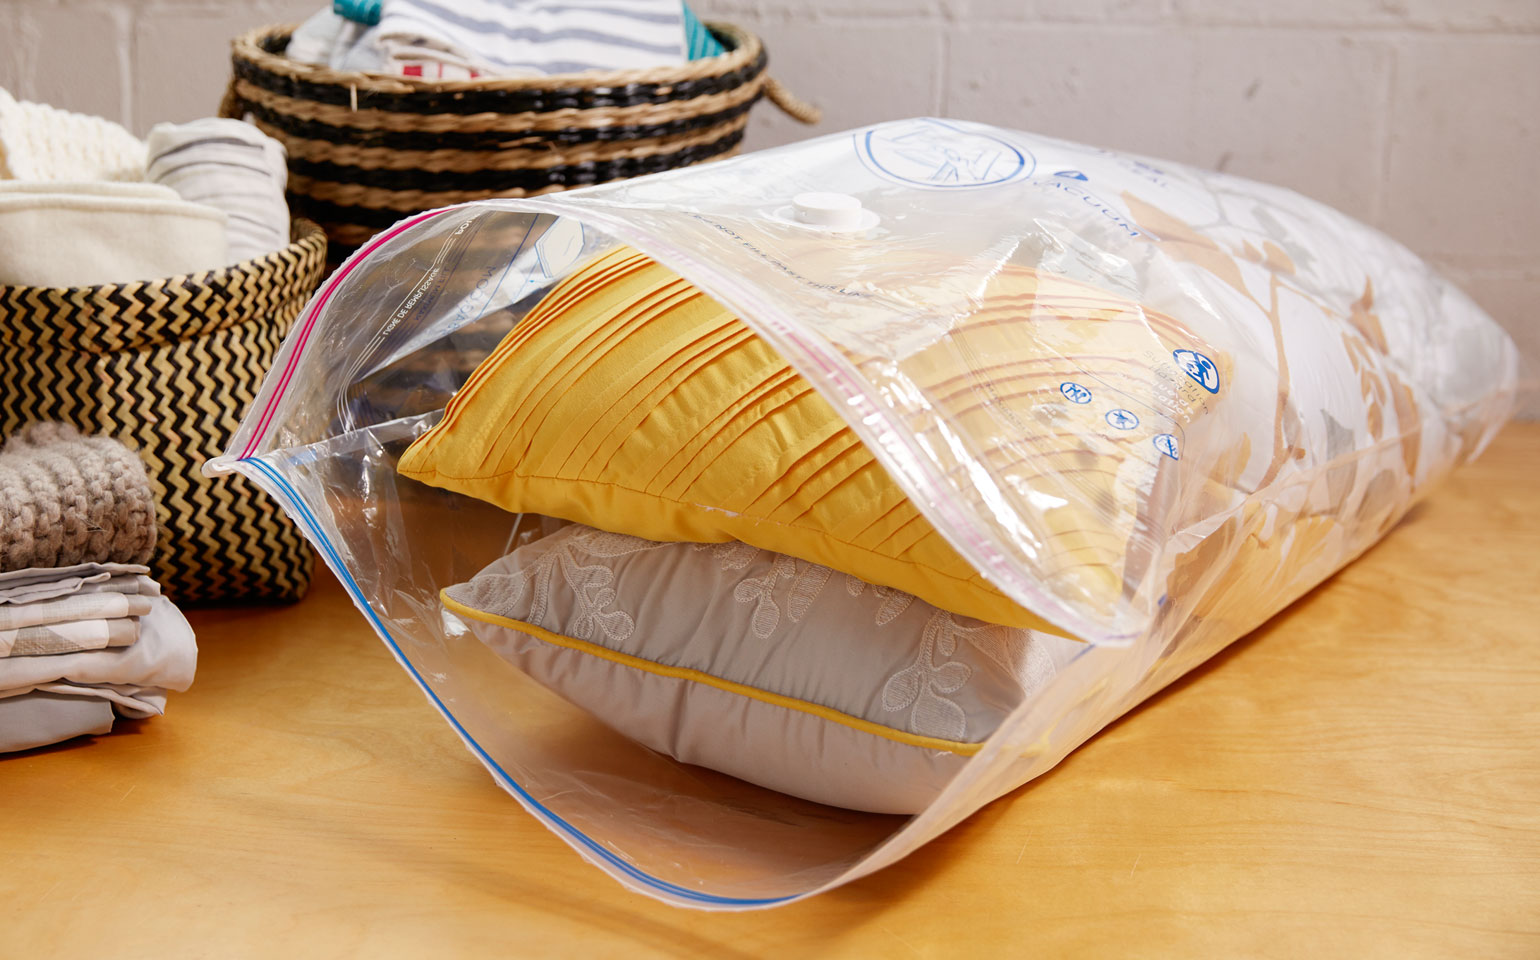 Large Ziploc Space Bags